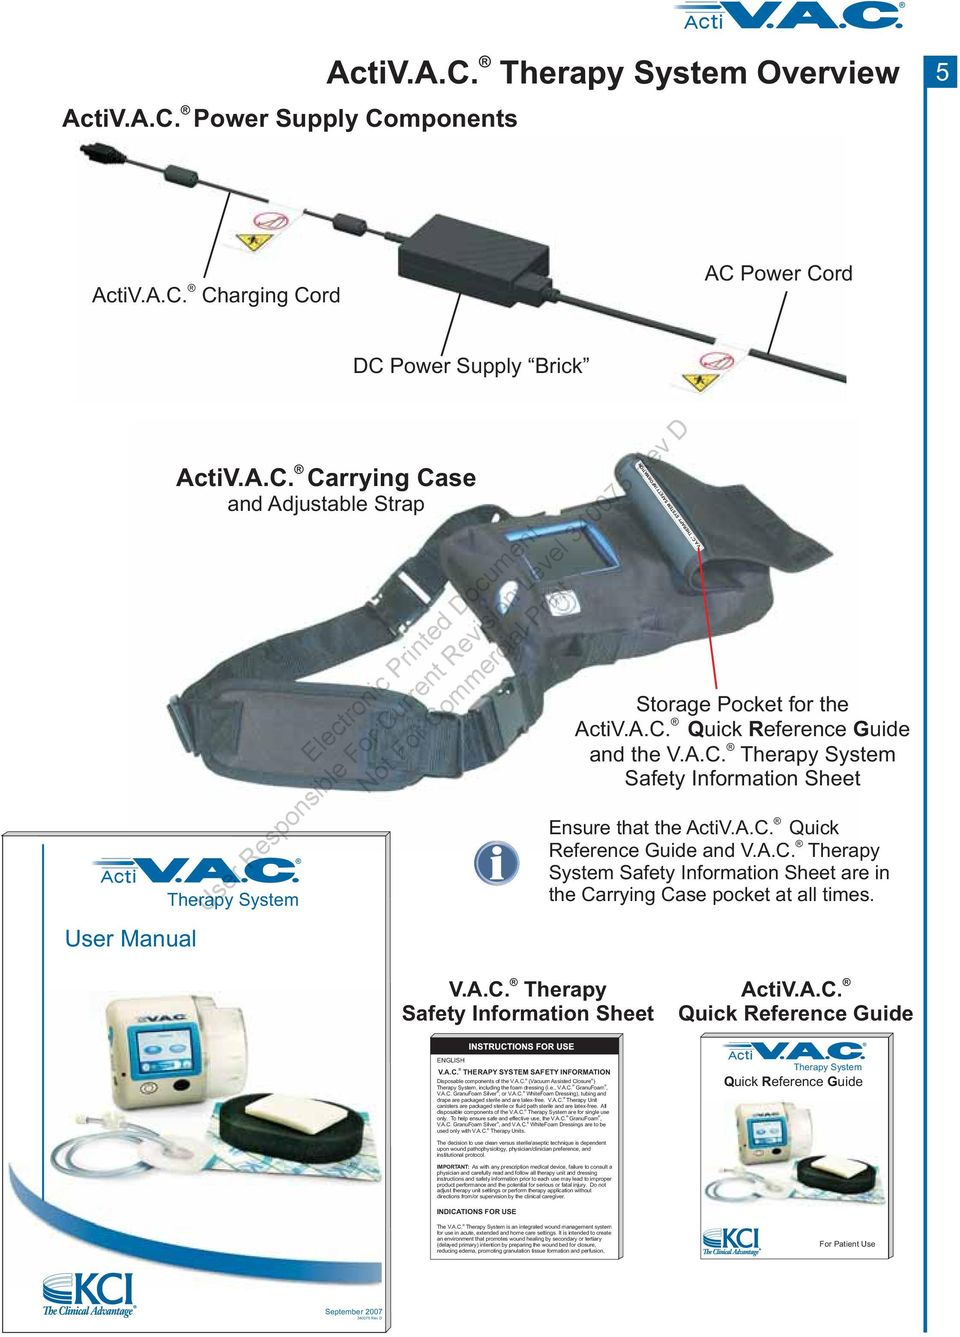 A.C. Therapy System Safety Information Sheet are in the Carrying Case pocket at all times. V.A.C. Therapy Safety Information Sheet ActiV.A.C. Quick Reference Guide ENGLISH V.A.C. THERAPY SYSTEM SAFETY INFORMATION Disposable components of the V.